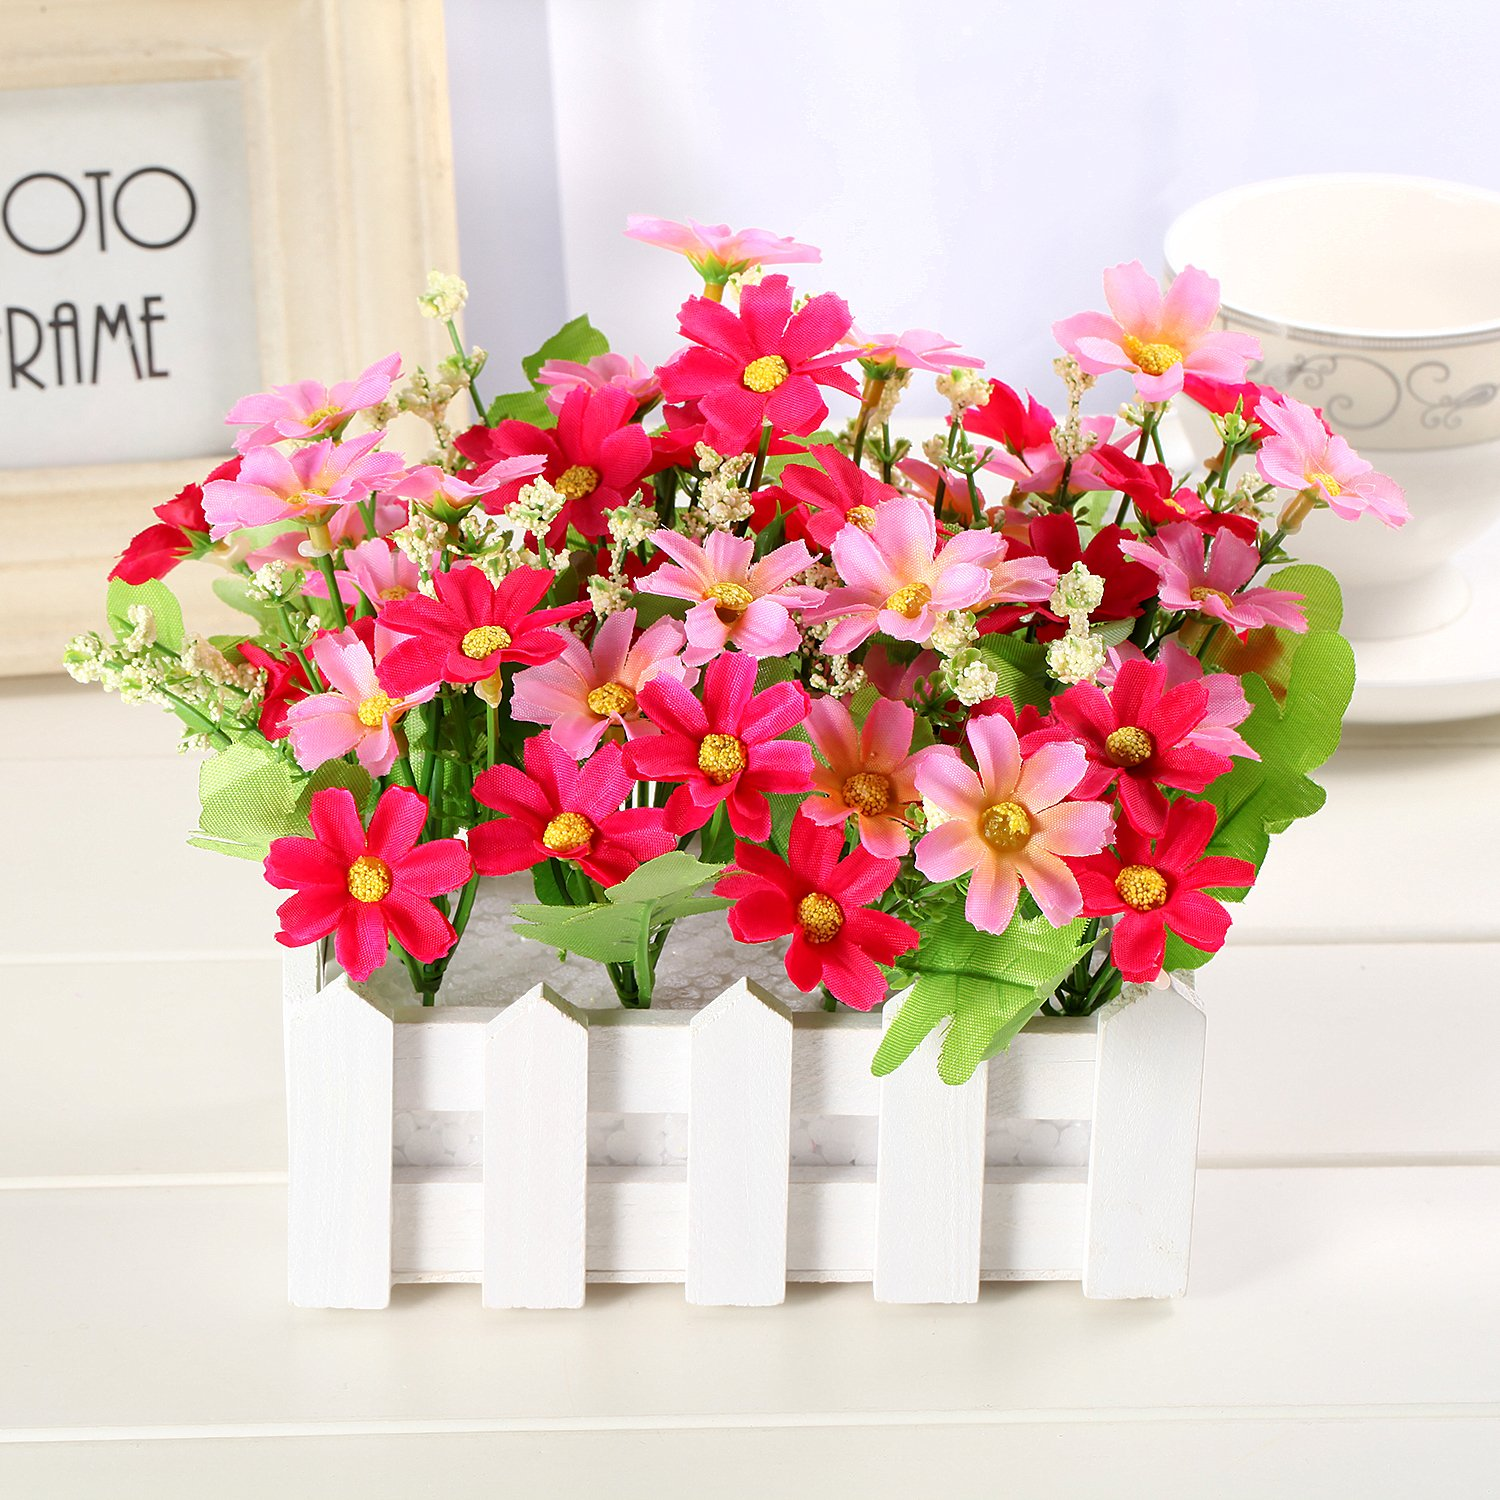 Louis Garden Artificial Flowers Fake Daisy in Picket Fence Pot Pack - Mini Potted Plant (Daisy-Pink) by Louis Garden (Image #2)